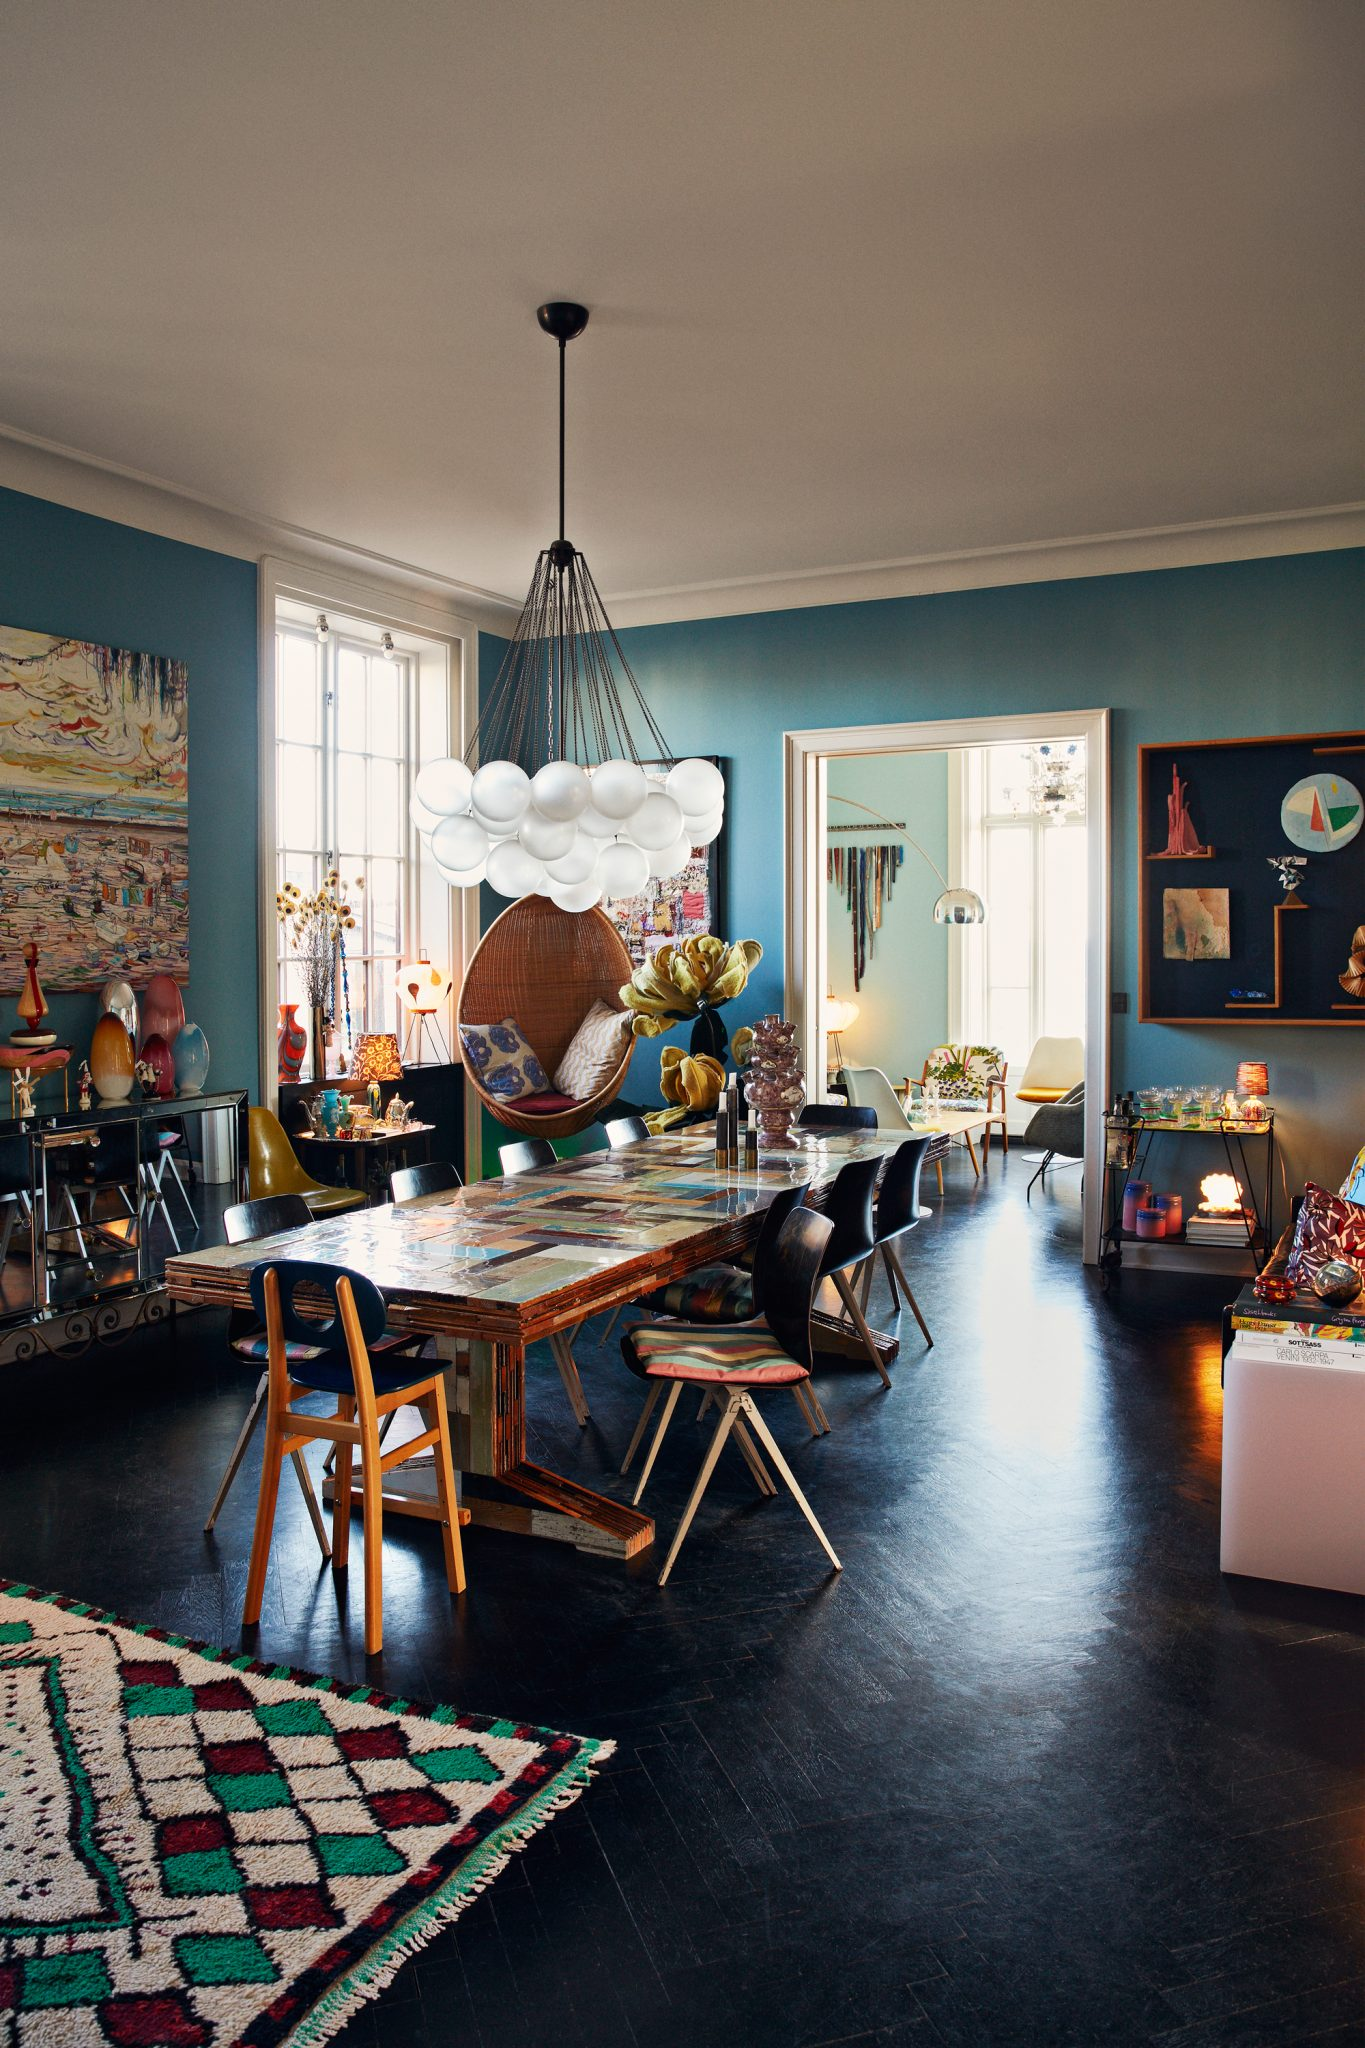 The Nordroom - The Colorful Copenhagen Home of an Art Collector